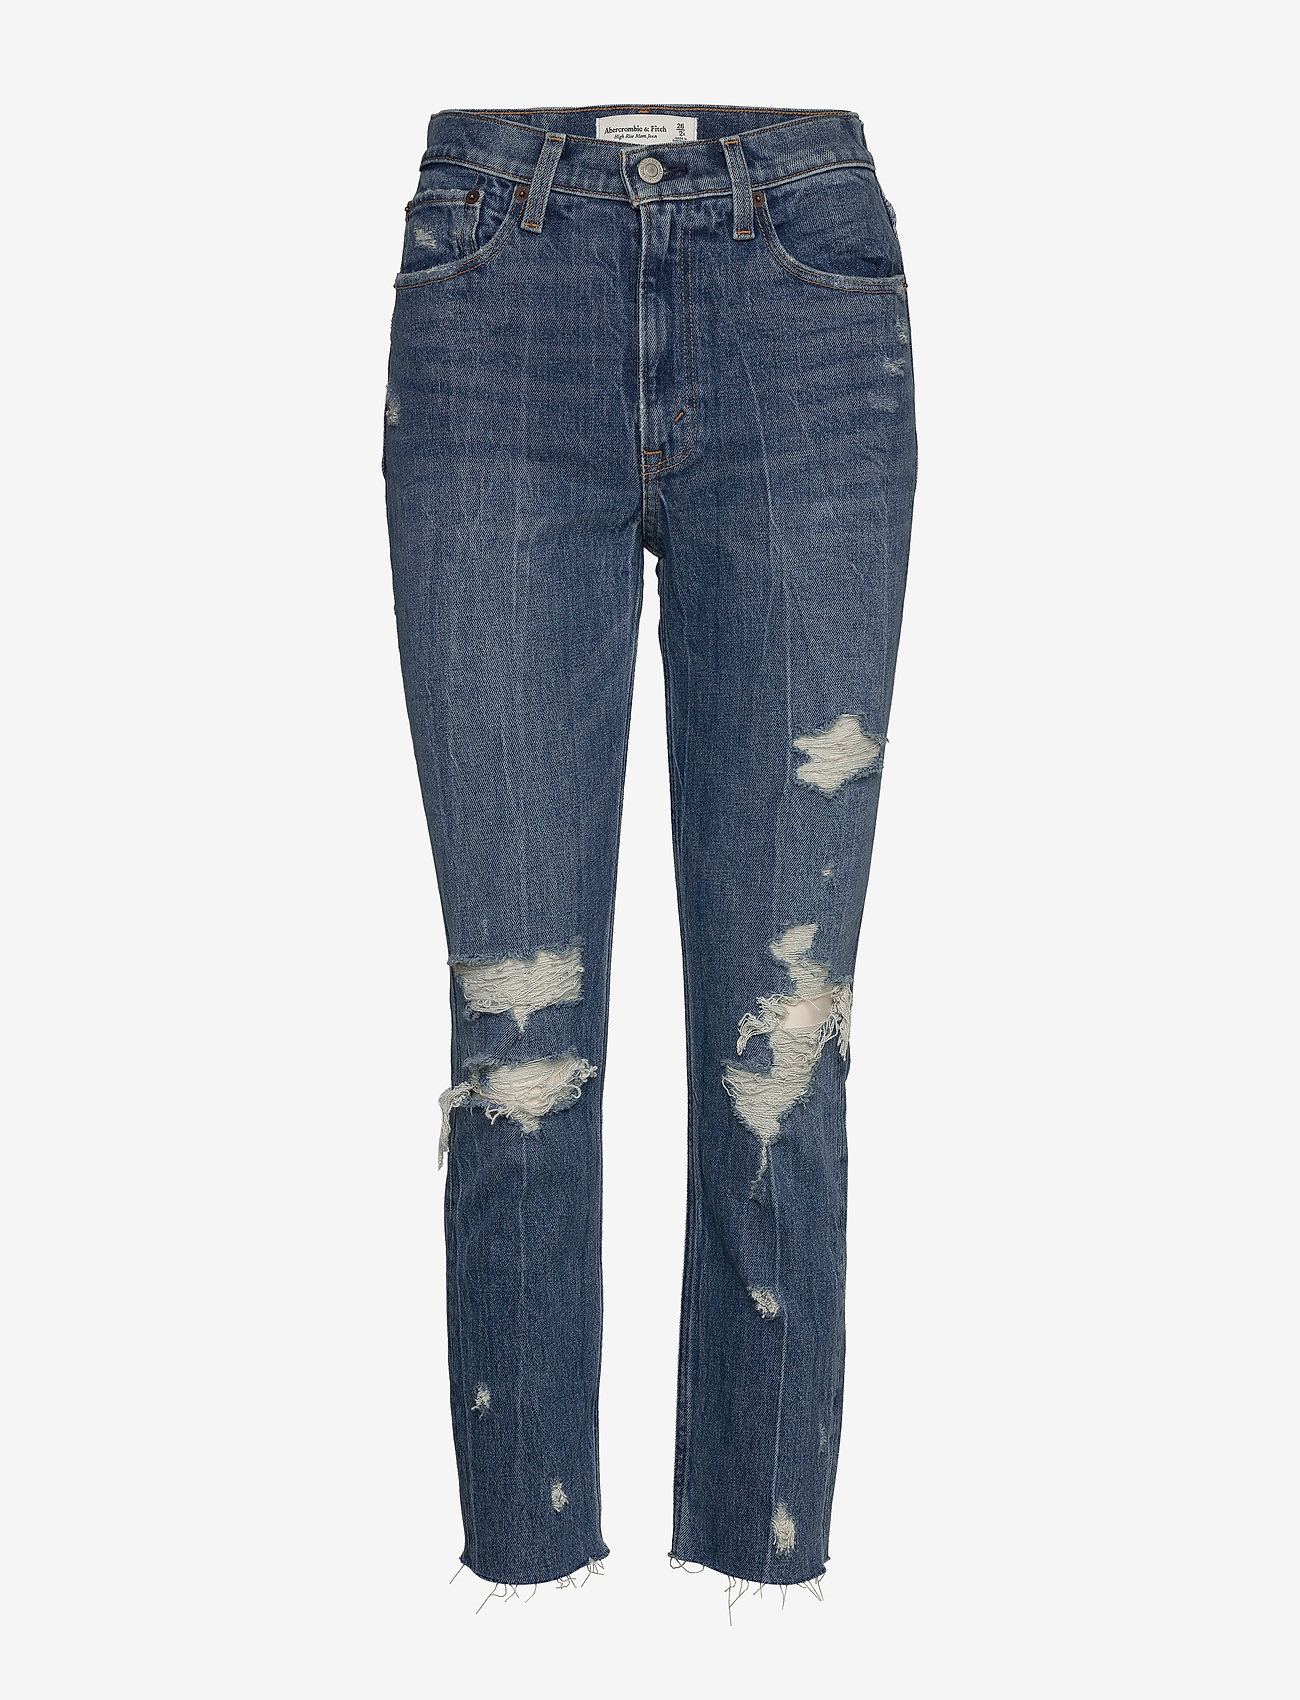 Abercrombie & Fitch - Mom Jeans - mom jeans - dark destroy - 0